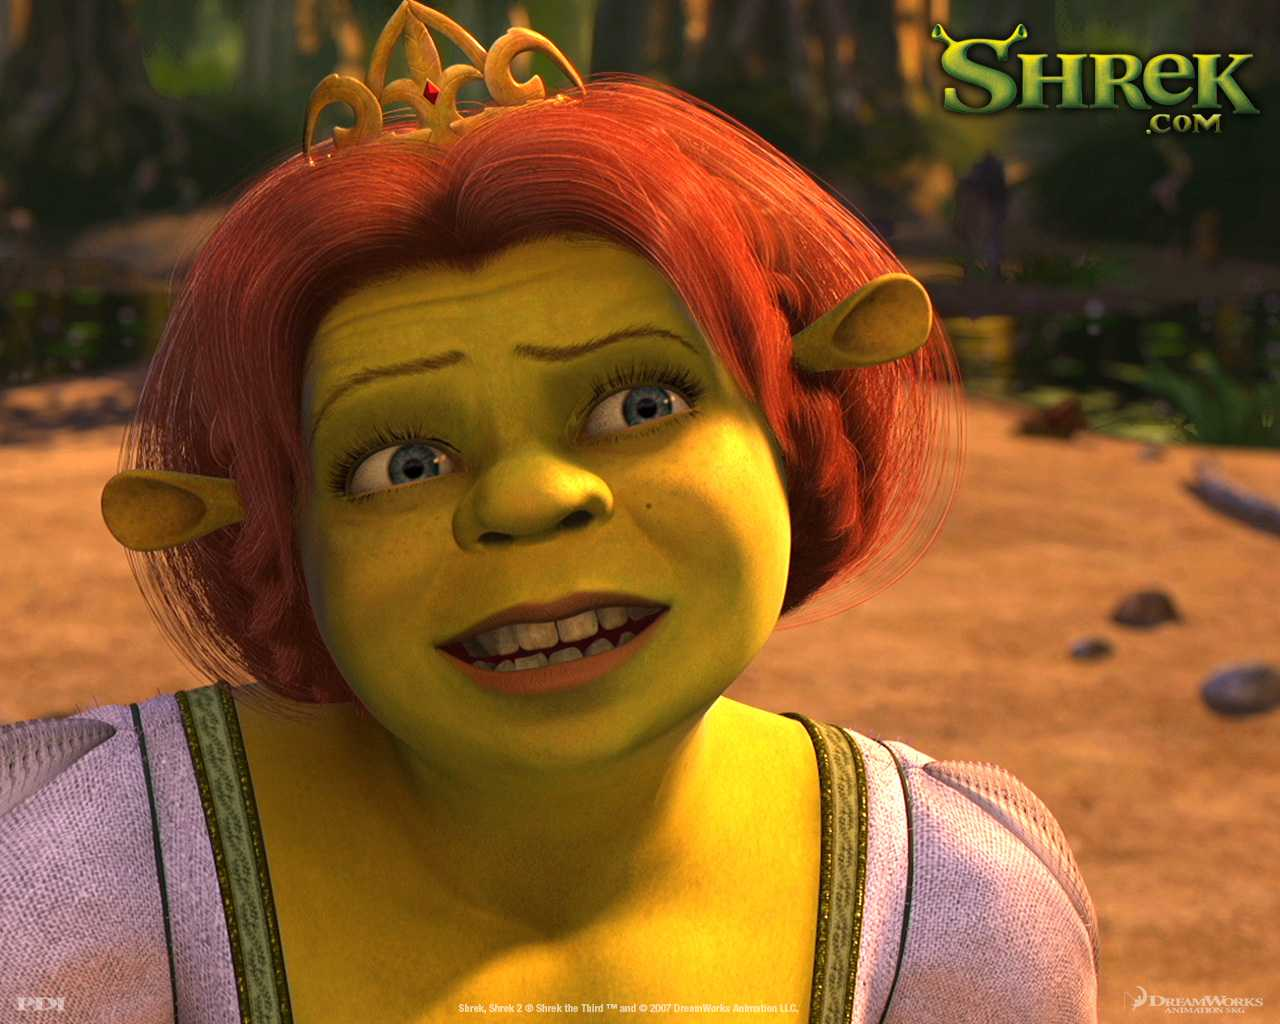 Shrek fionna pirn fucks galleries